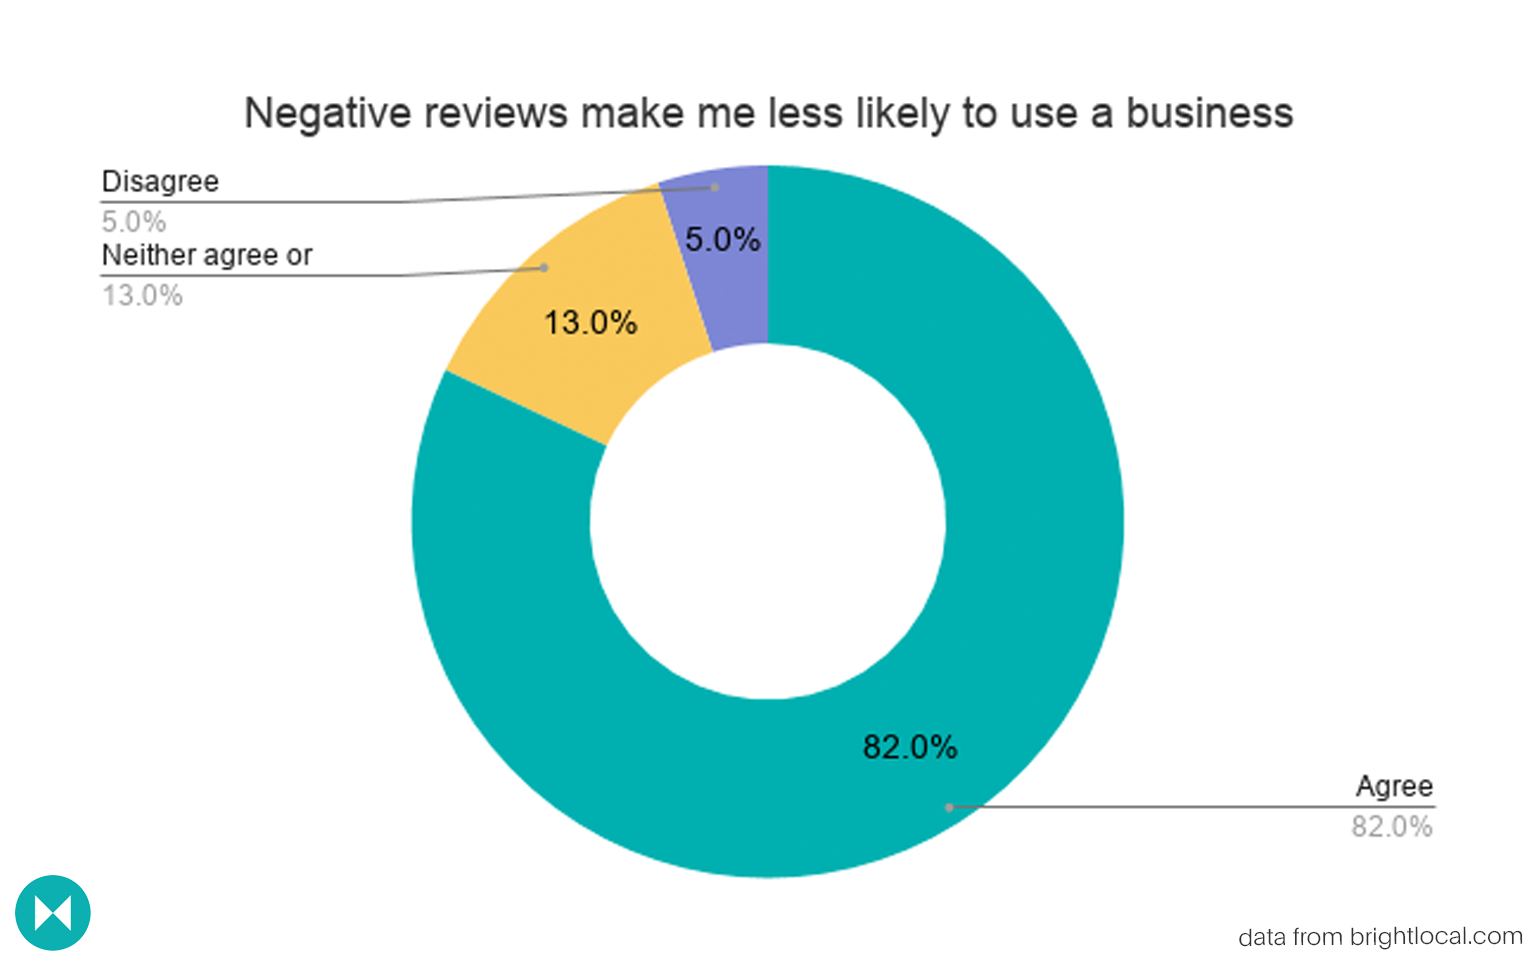 donut graph depicting whether negative reviews makes people less likely to use a business